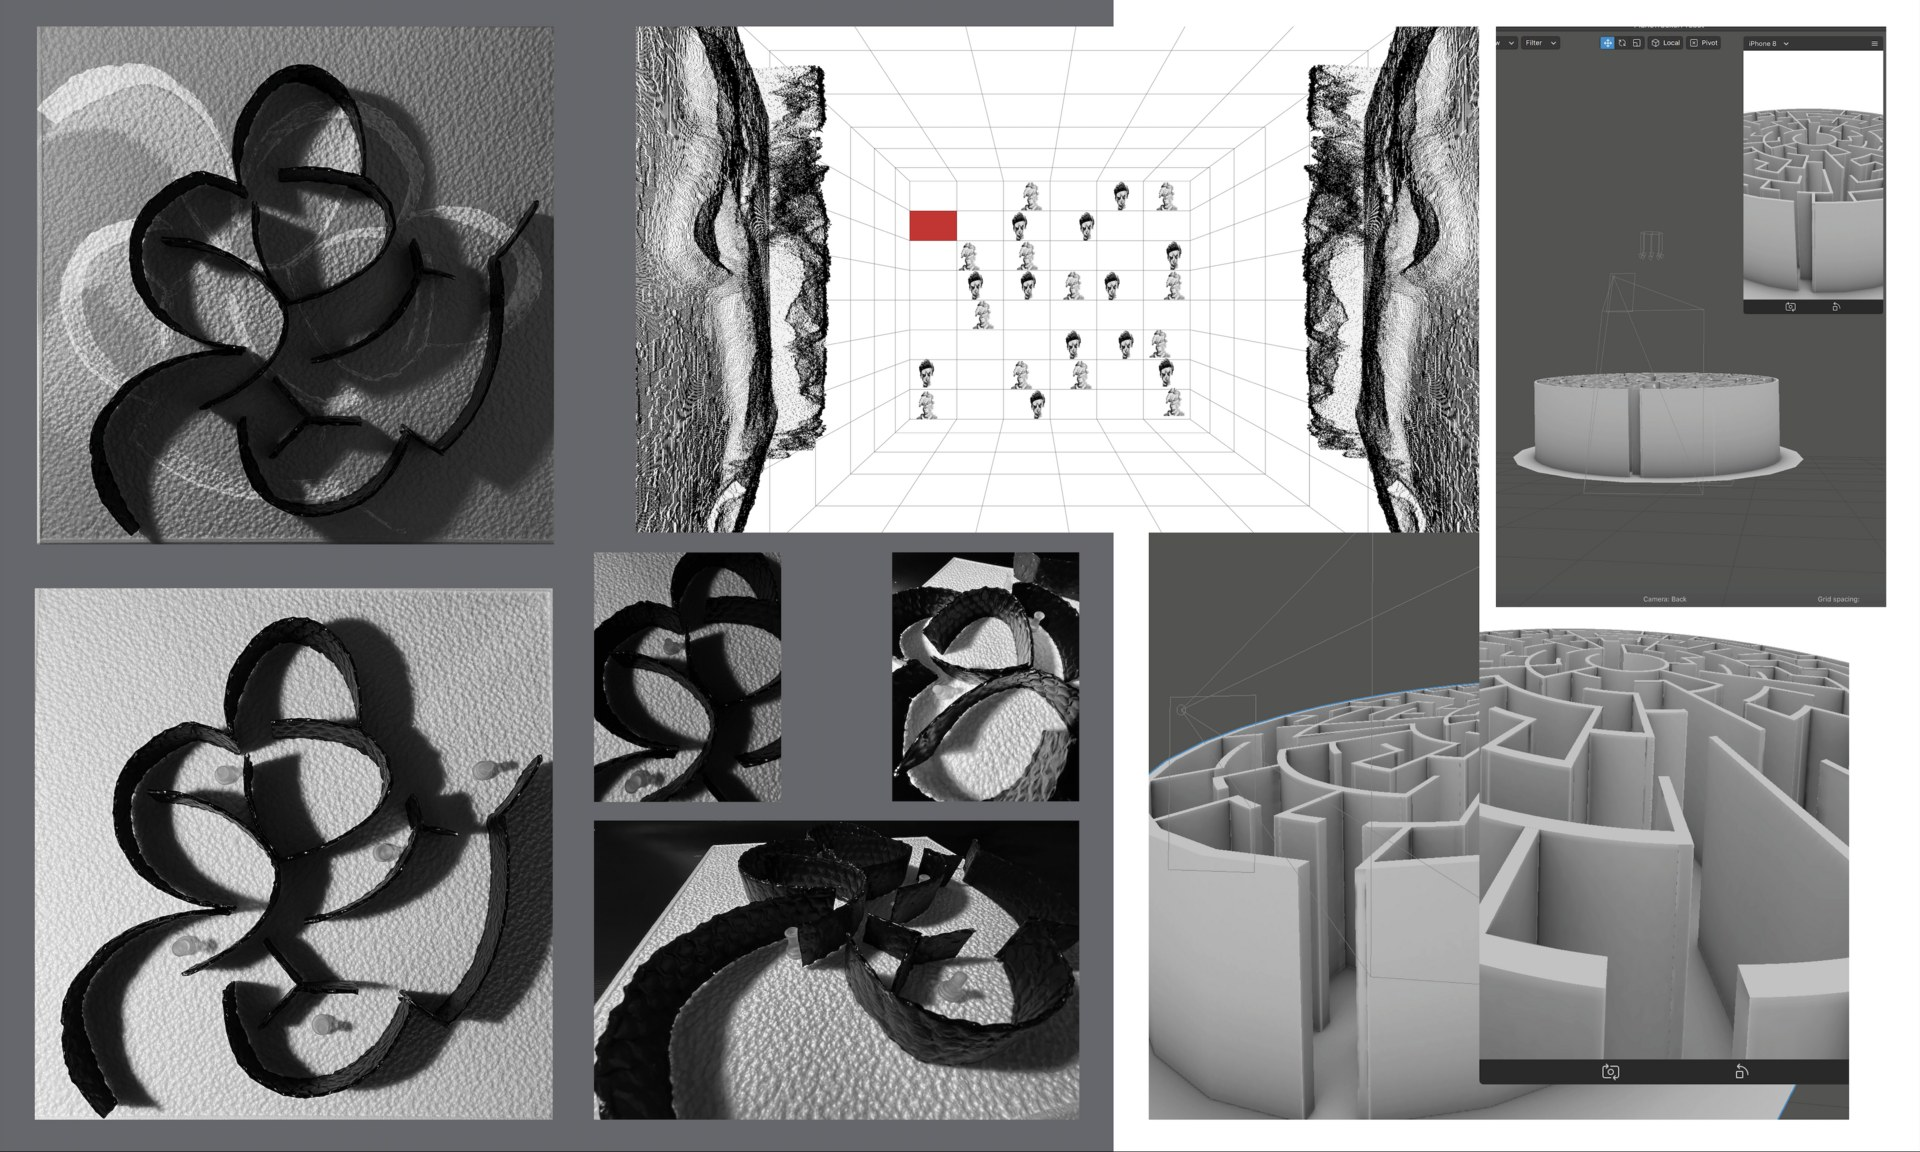 Physical and Digital Models of UI